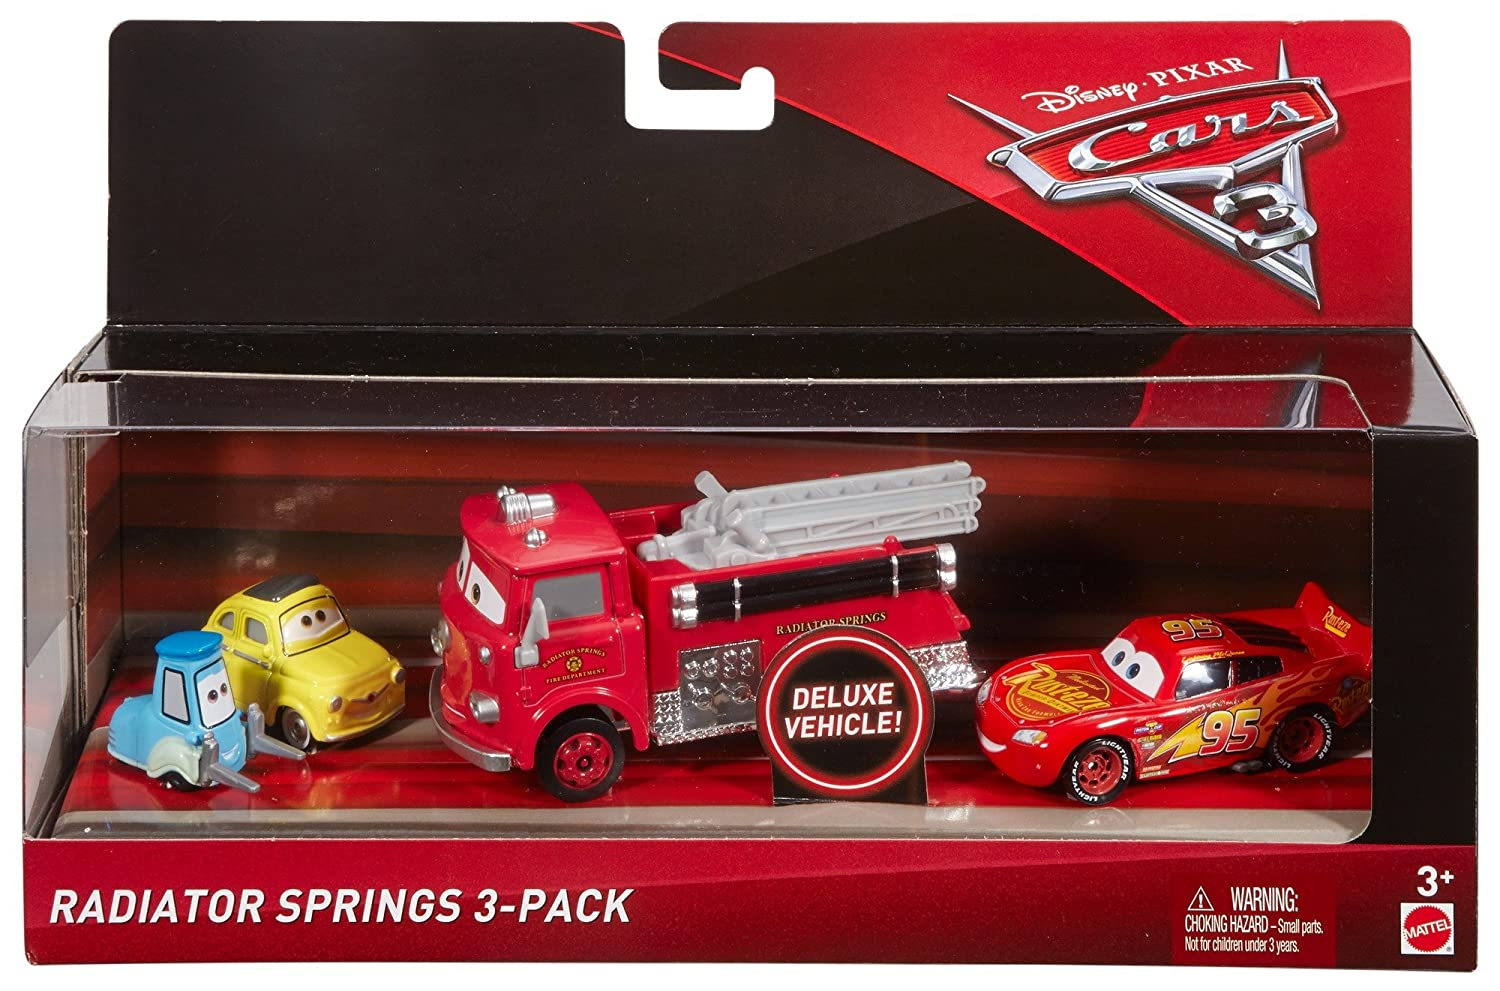 Cars 3 Diecasts Walmart Amazon Listings With Images Page 7